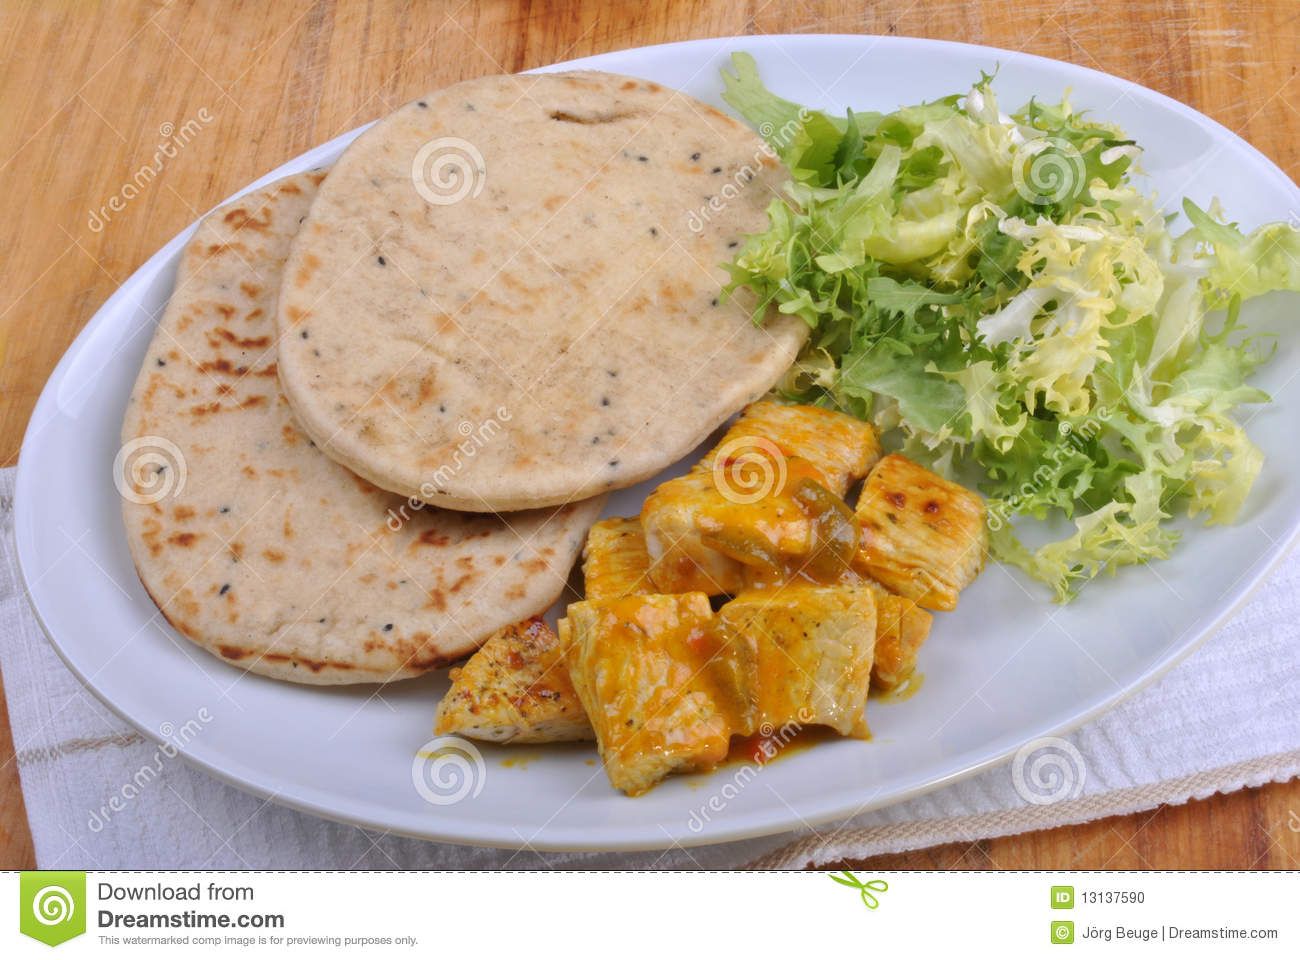 Naan bread with turkey curry